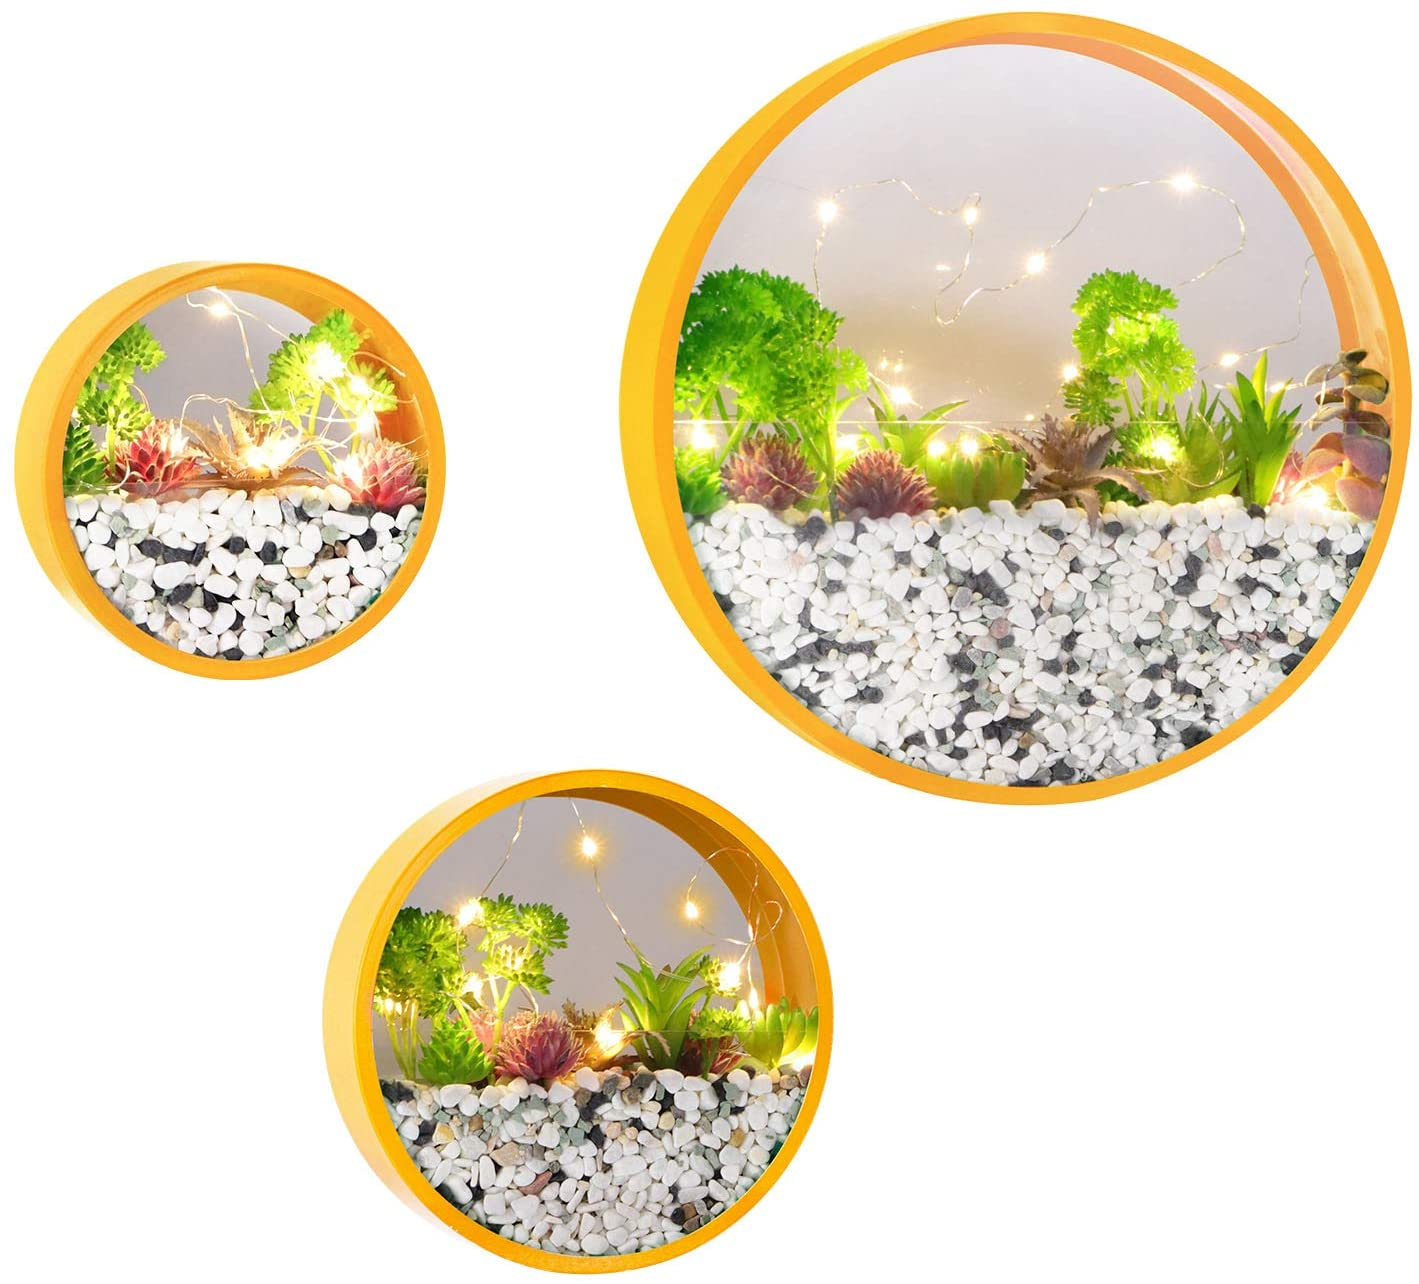 Wistwoxxon Modern Round Glass Wall Planter, 3 Pack Set Wall Planters with LED Light String, Circle Iron Succulent Planter for Herb,Small Cactus Perfect for Balcony, Room and Patio Decor (Yellow)